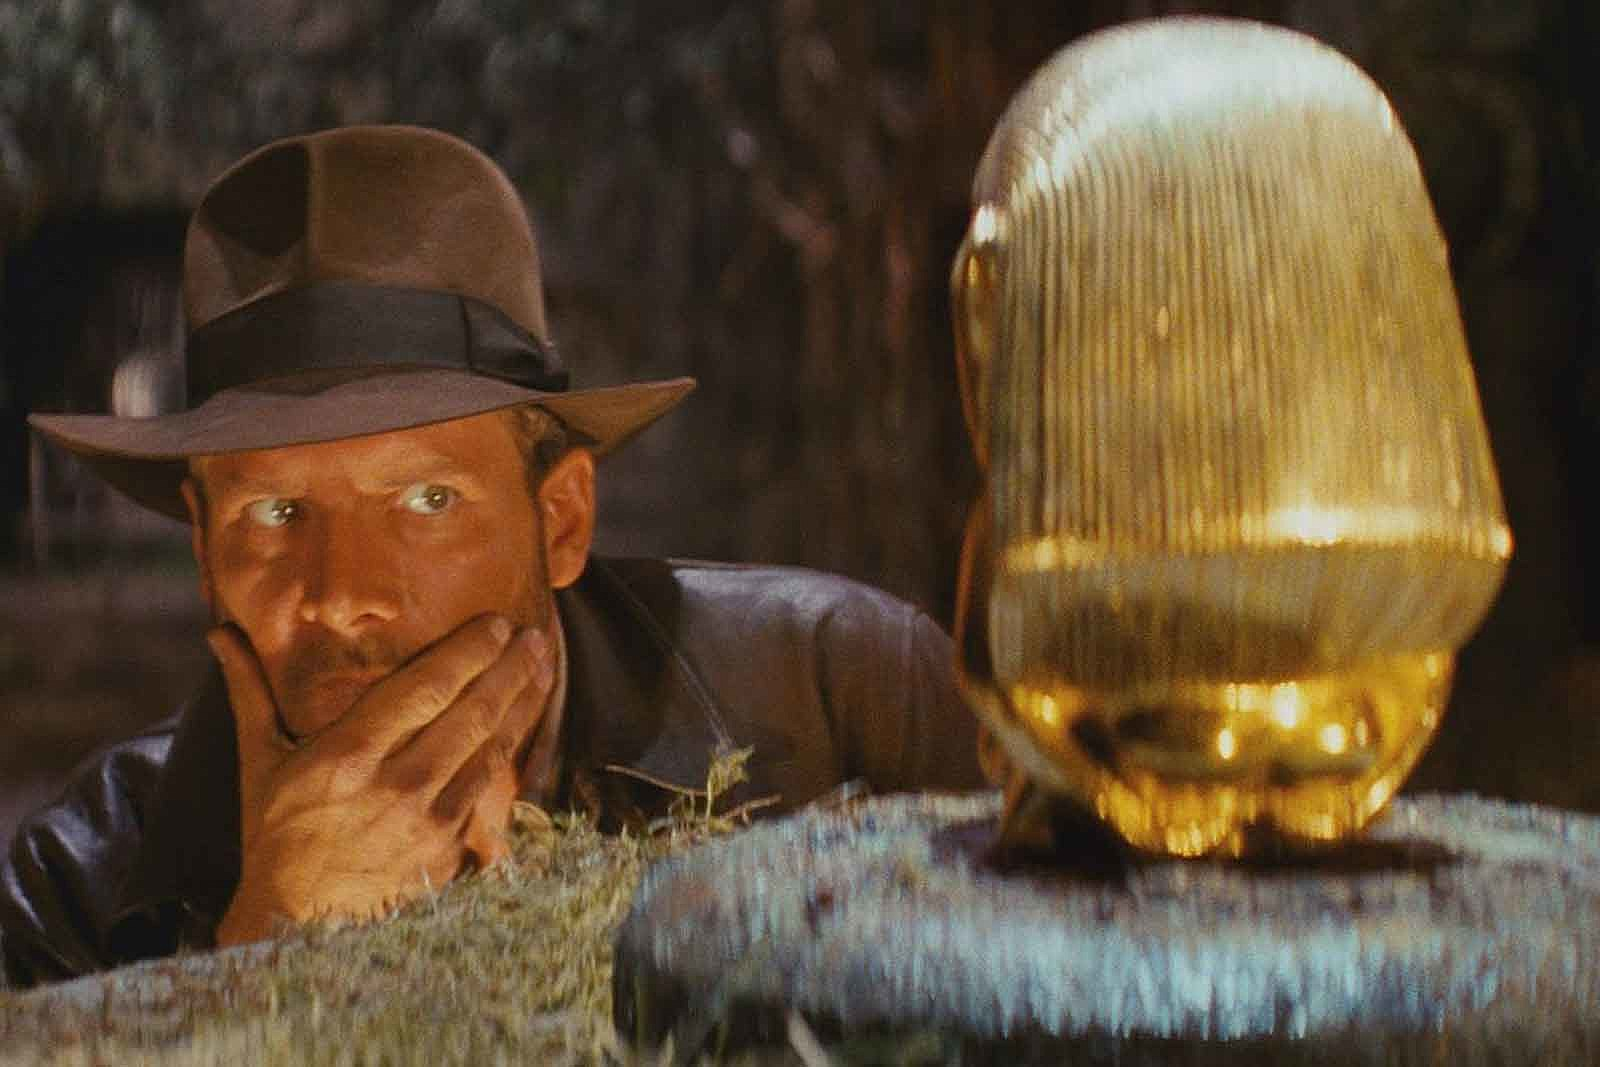 How 'Indiana Jones and the Temple of Doom' Made PG-13 a Reality